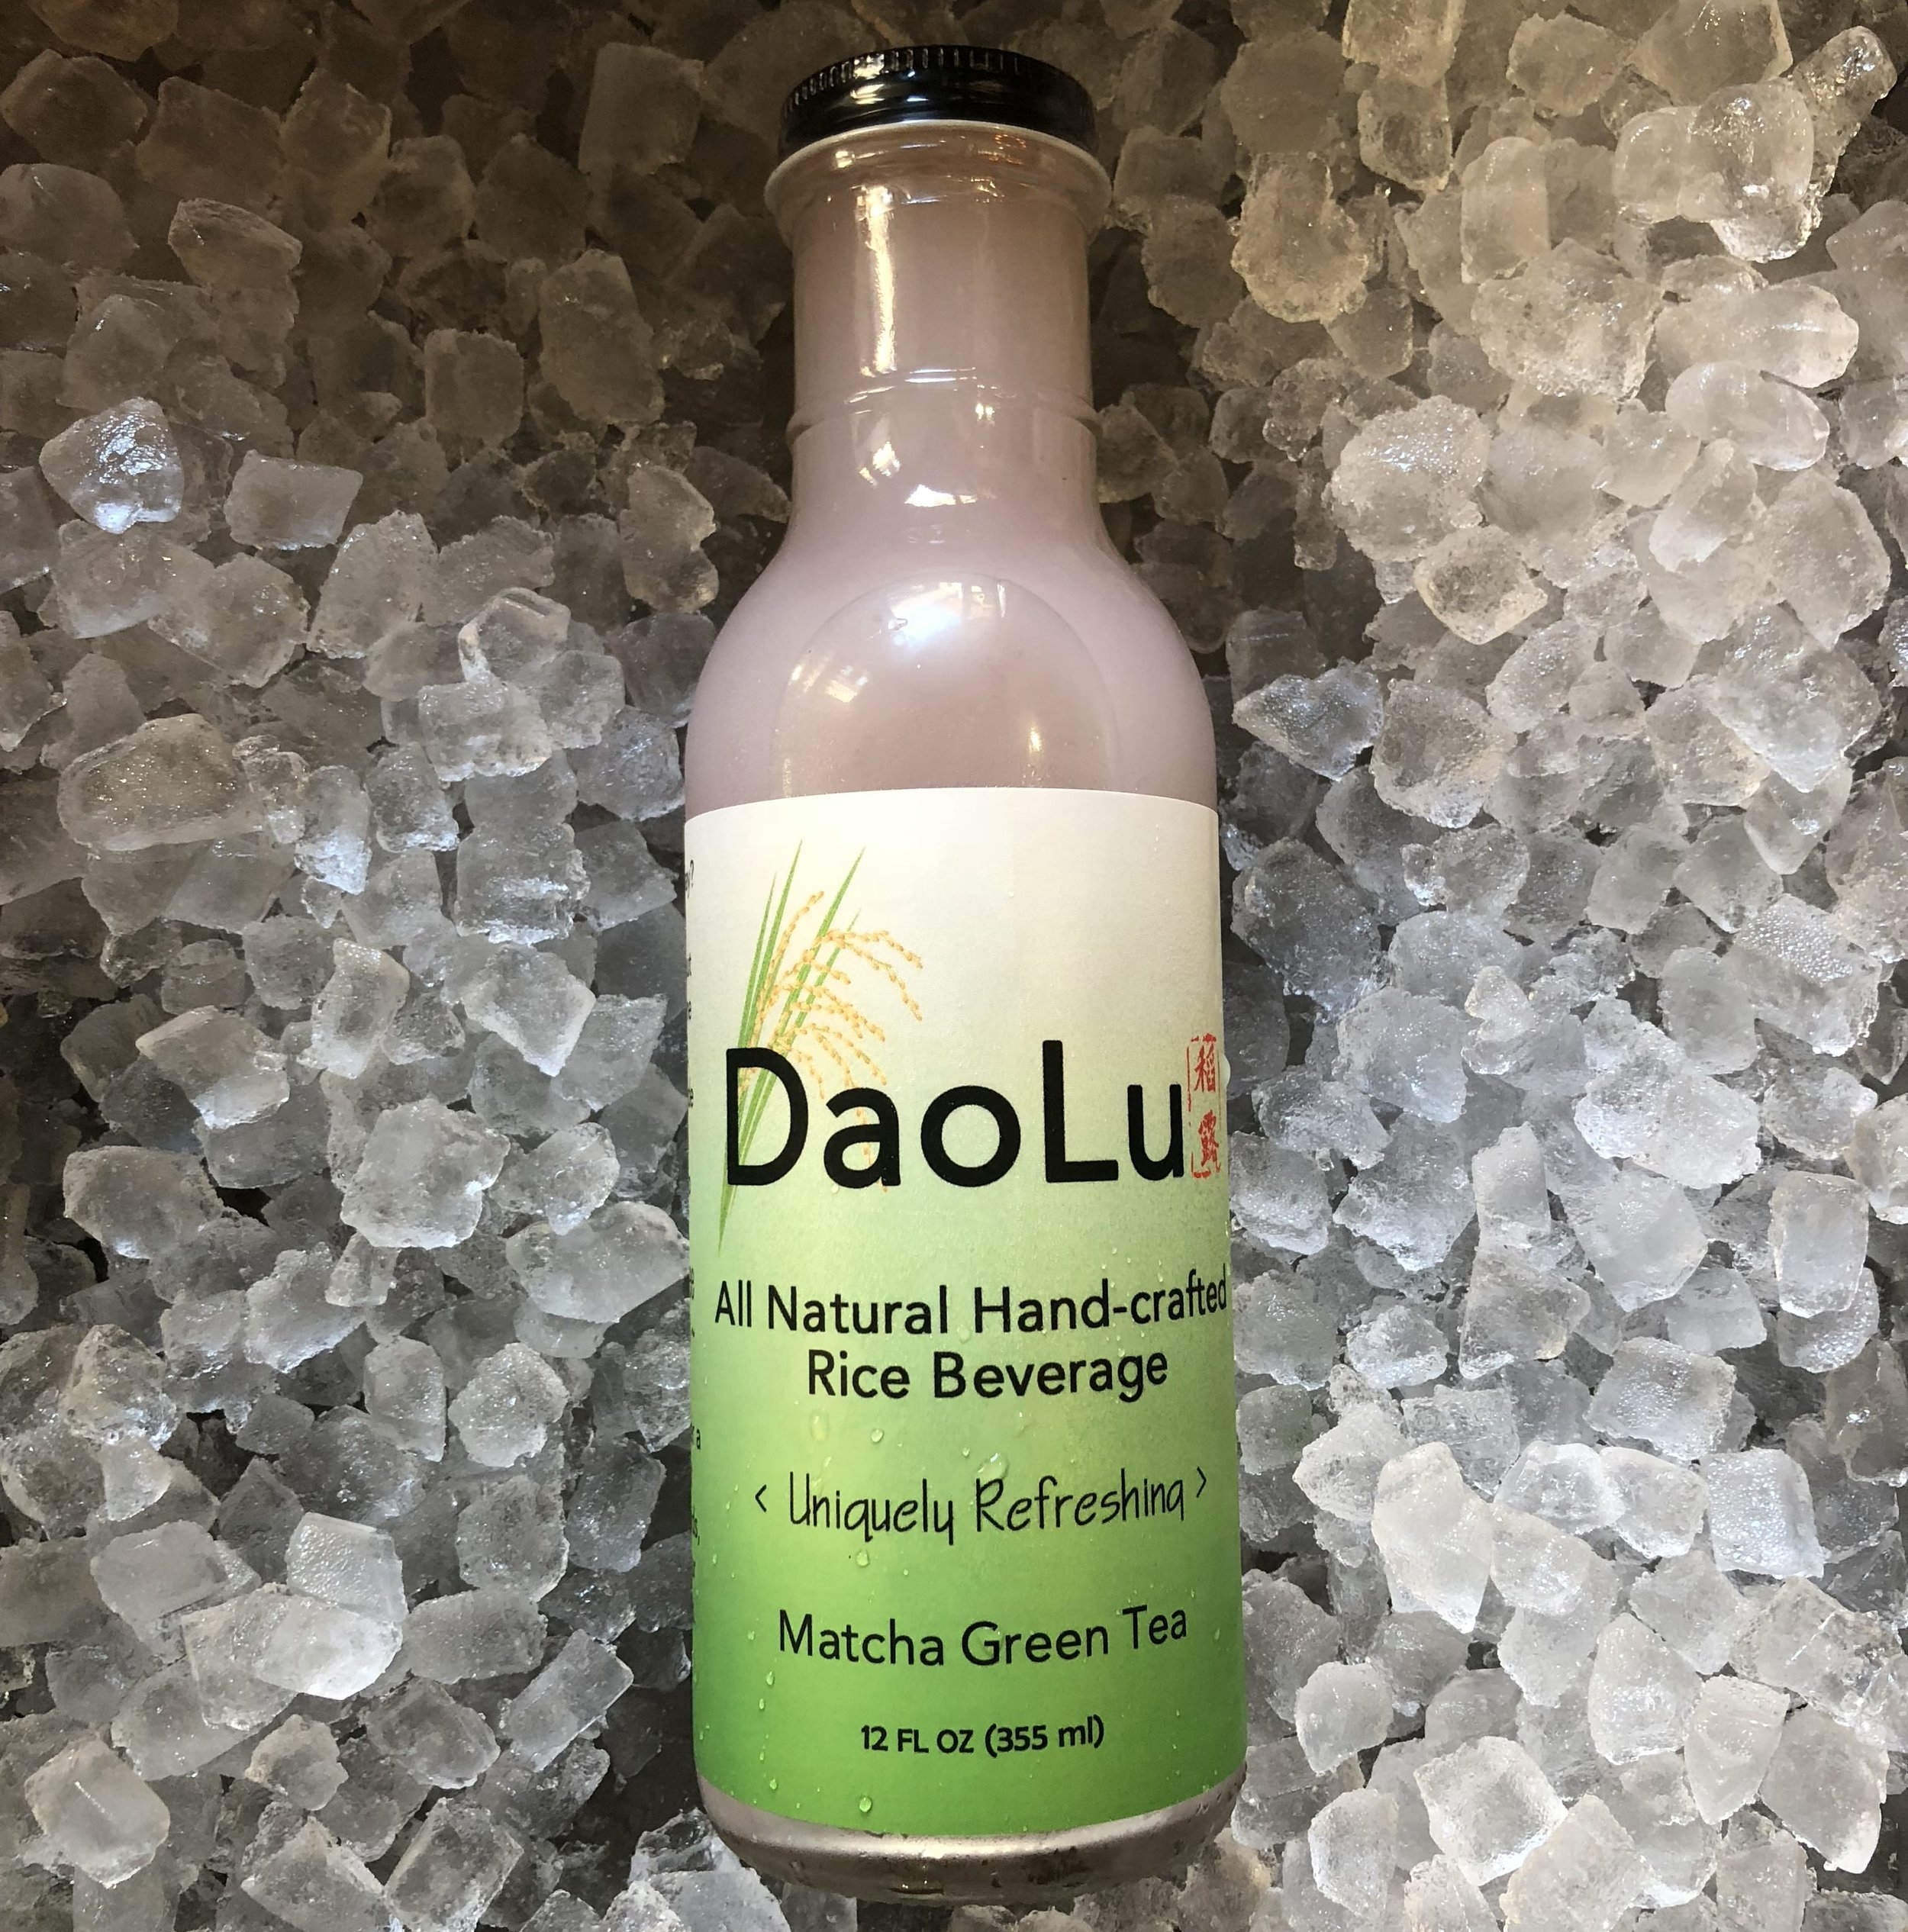 matcha green tea - Any tea-lovers out there? If so, this is the drink for you. Actually scratch that, our Matcha Green Tea flavor is the drink for everyone!The smooth and savory taste of matcha will keep you refreshed and mentally active to take on your day.